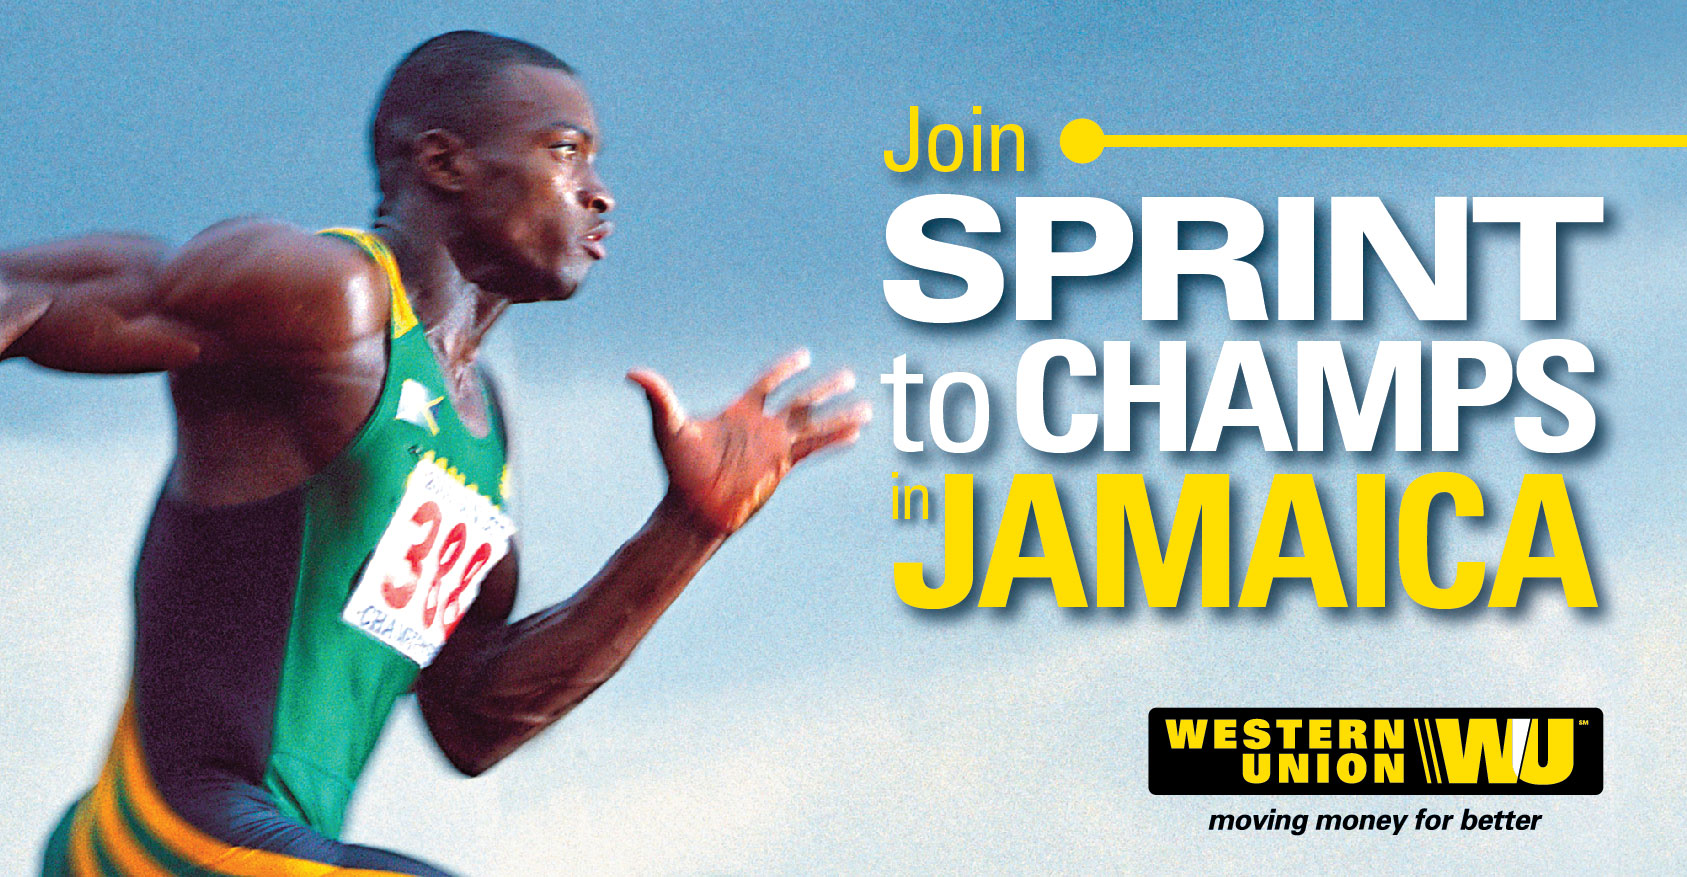 Sprint to Champs in Jamaica